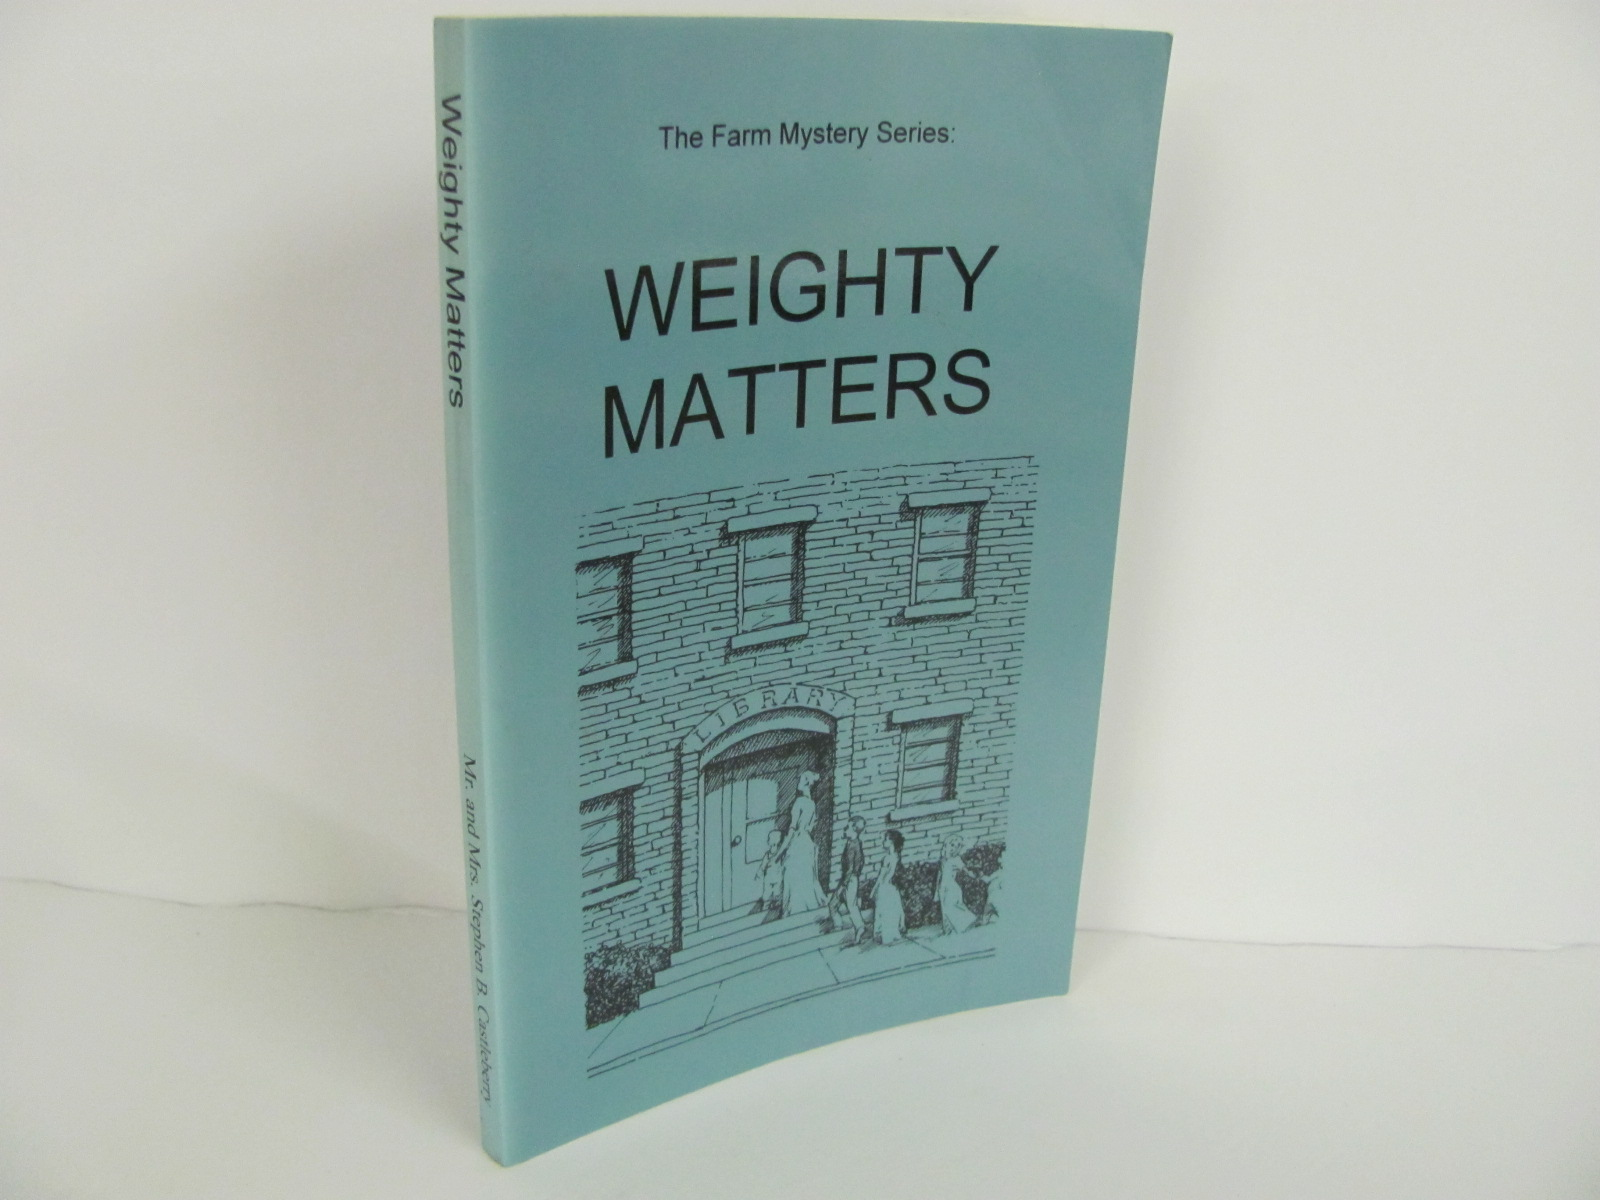 Castleberry-Farms-Weighty-Matters-Castleberry-Used-Fiction_315285A.jpg